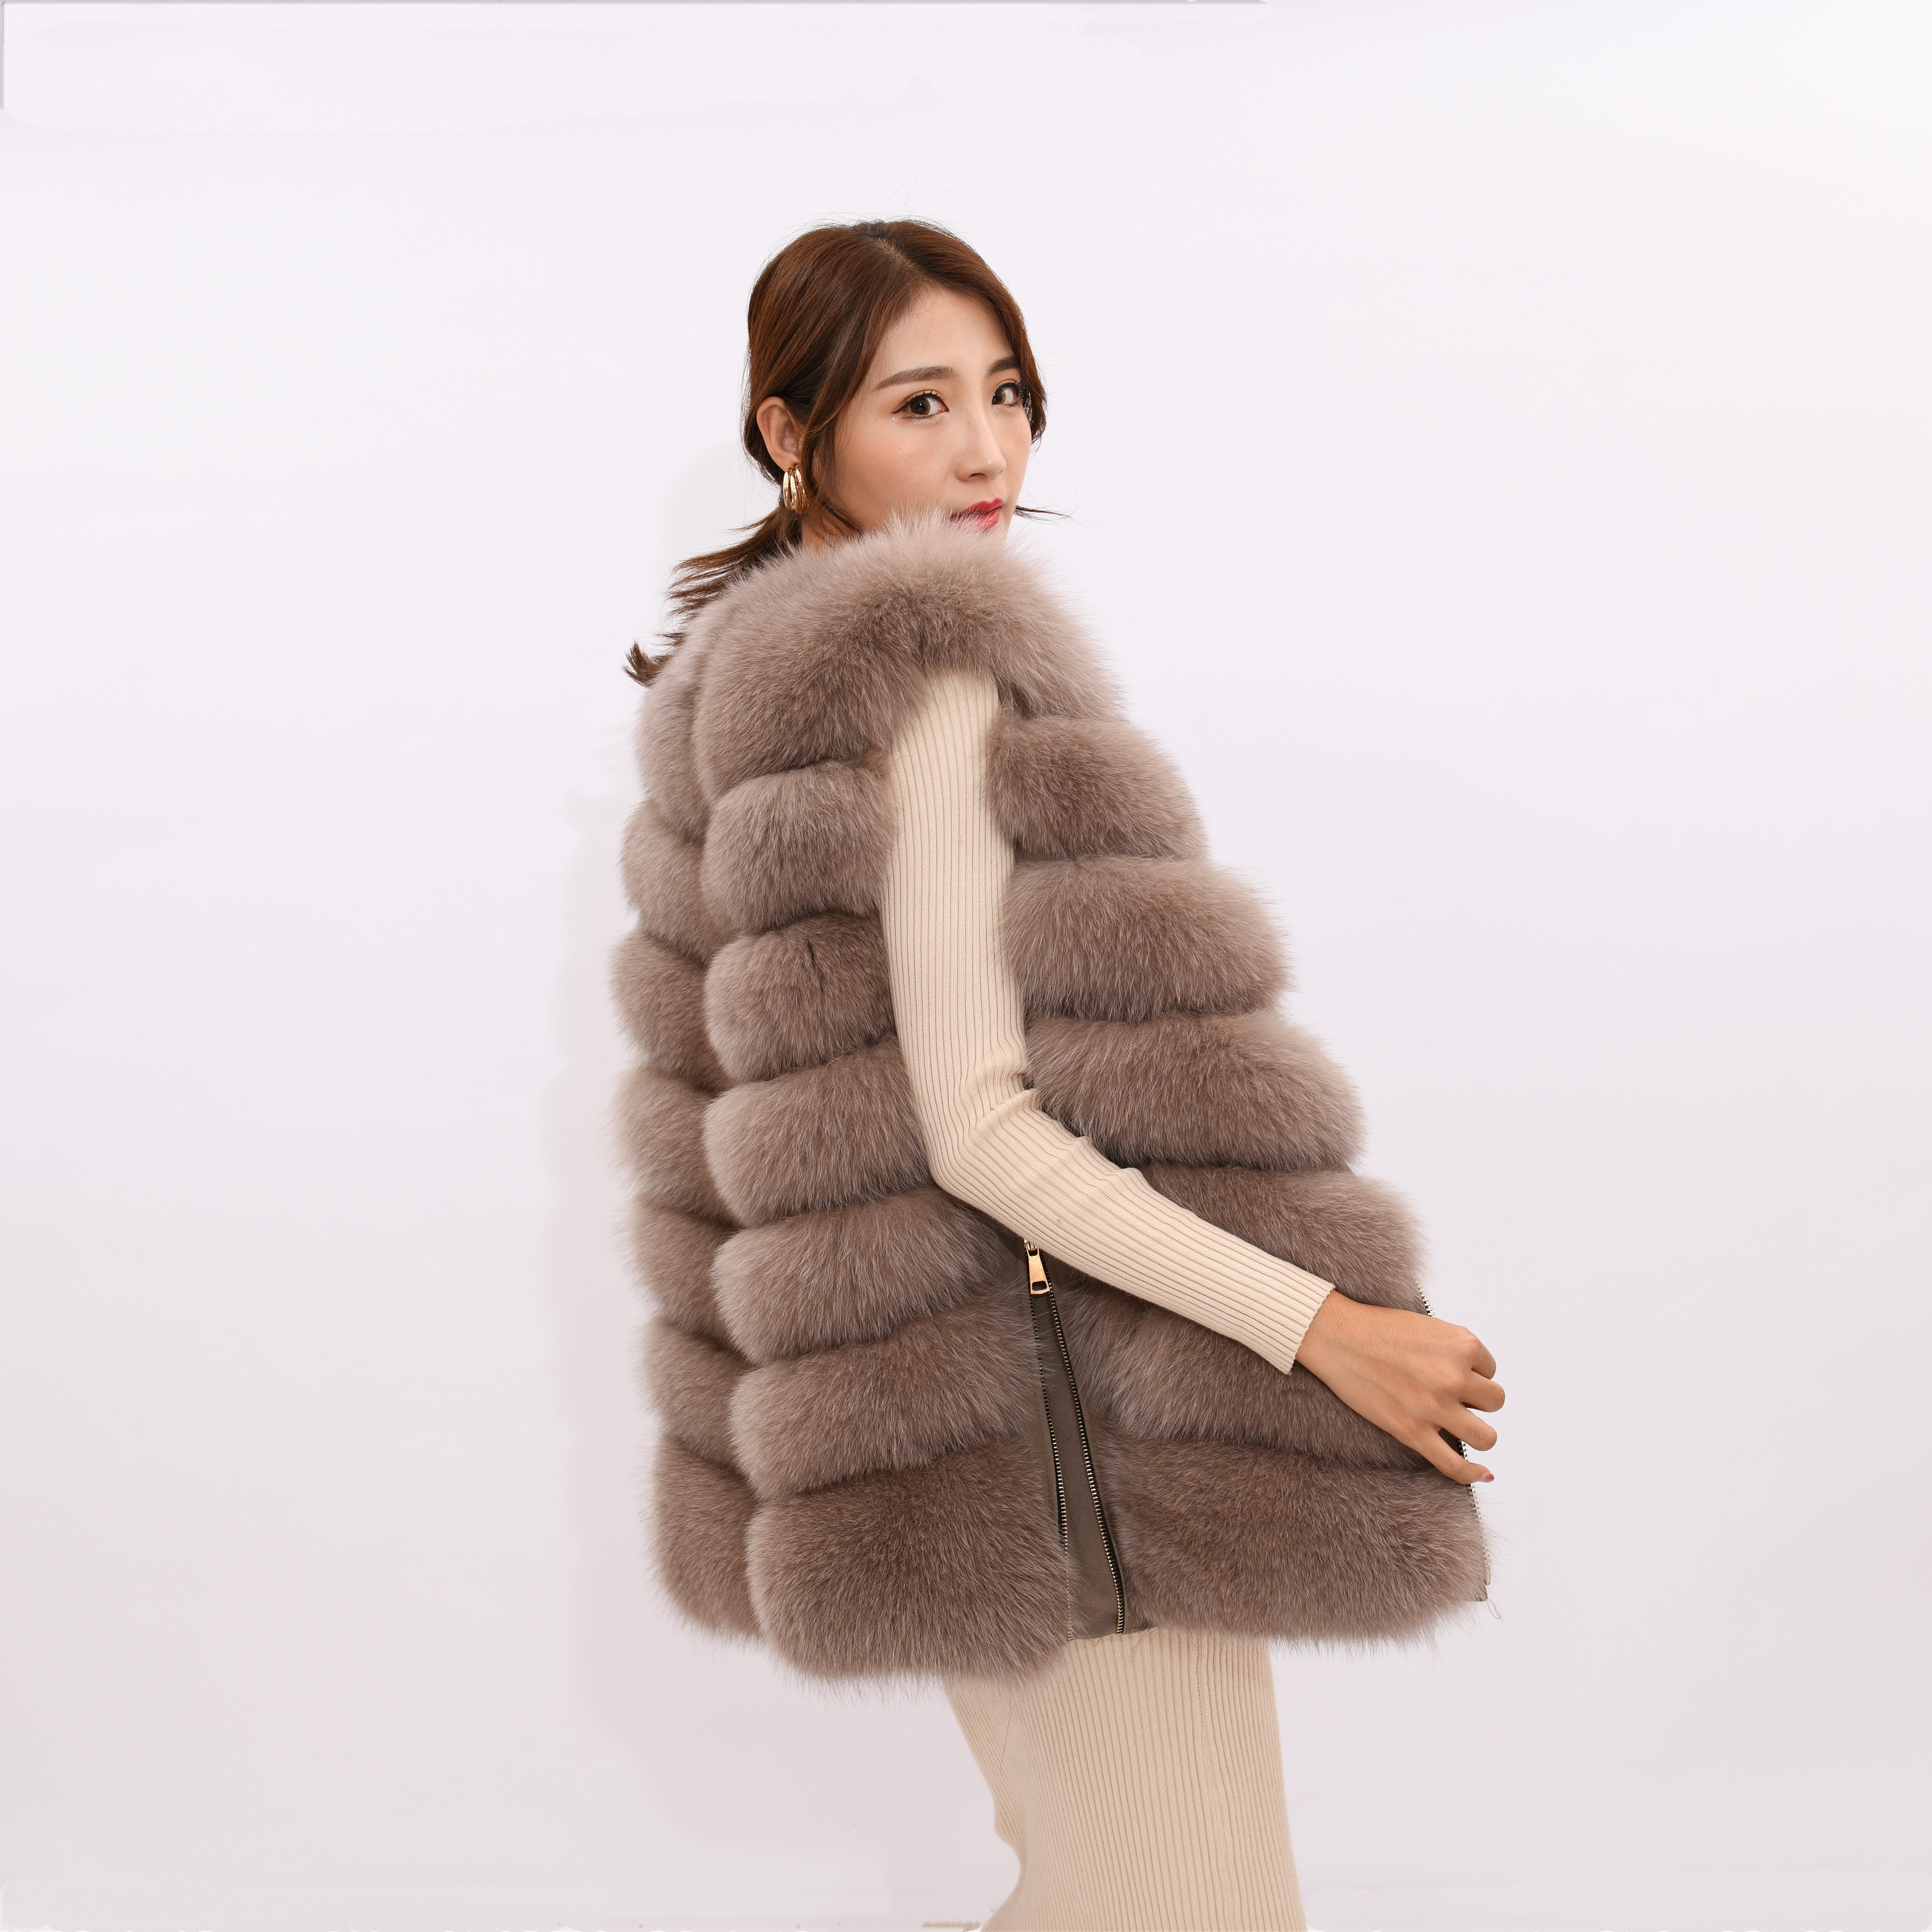 Image 3 - 2019 new women's winter real fox fur vest, real fox fur jacket, 100% natural real fur coat, high quality stylish warm sleeveless-in Real Fur from Women's Clothing